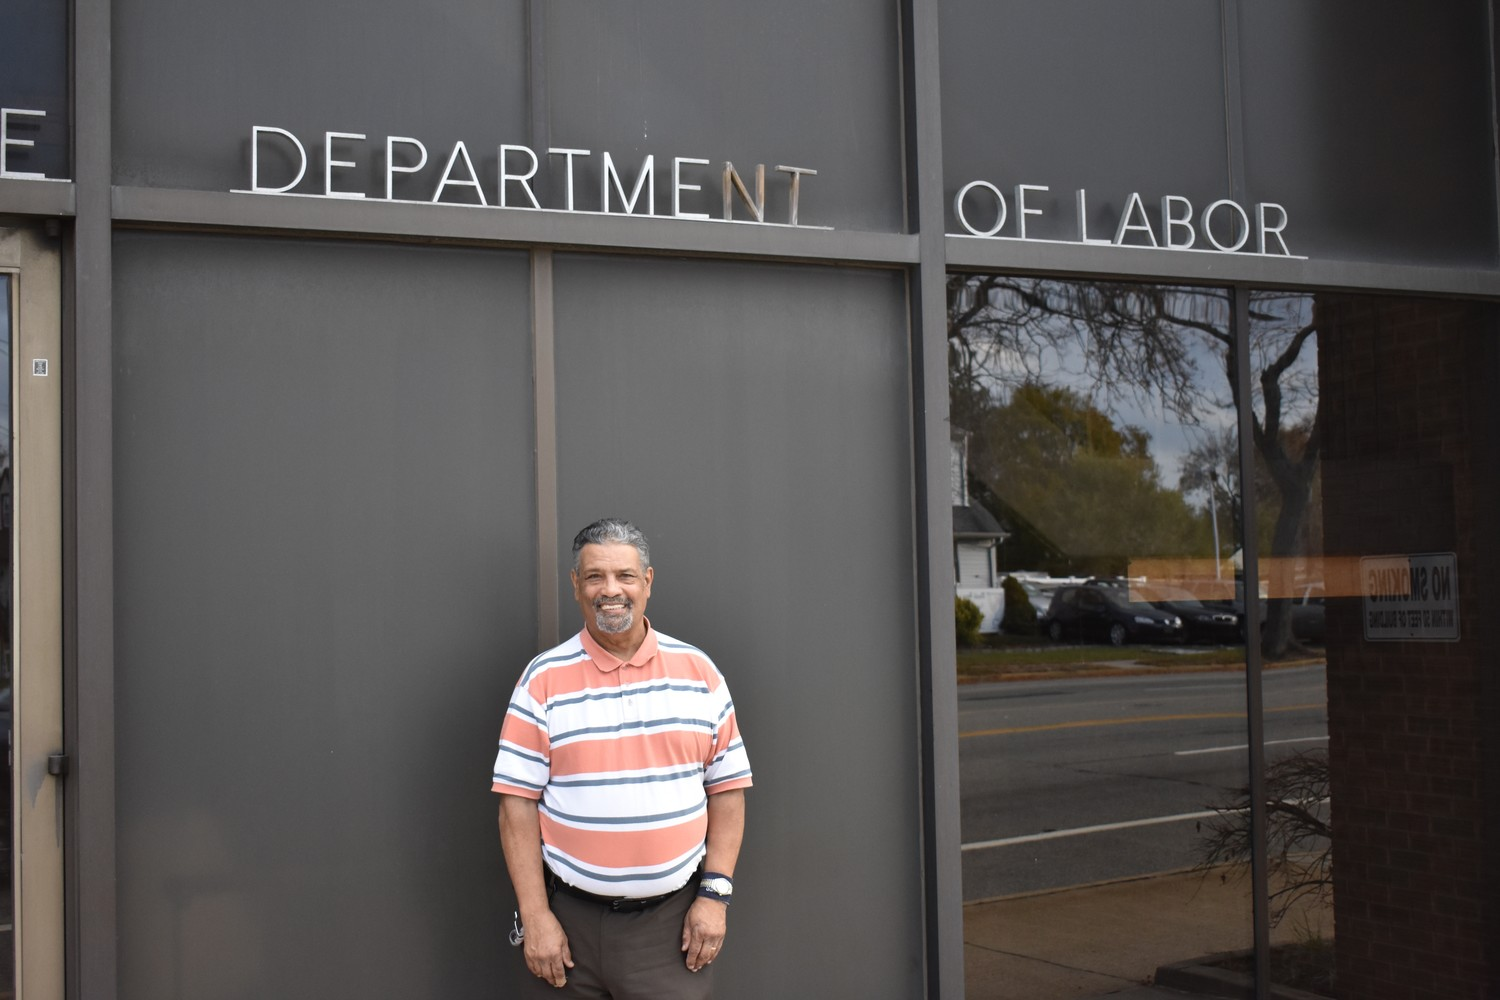 Joseph Forte landed his dream job at the New York State Department of Labor's Hickville Career Center in 2009, and has worked hard there as a custodian.